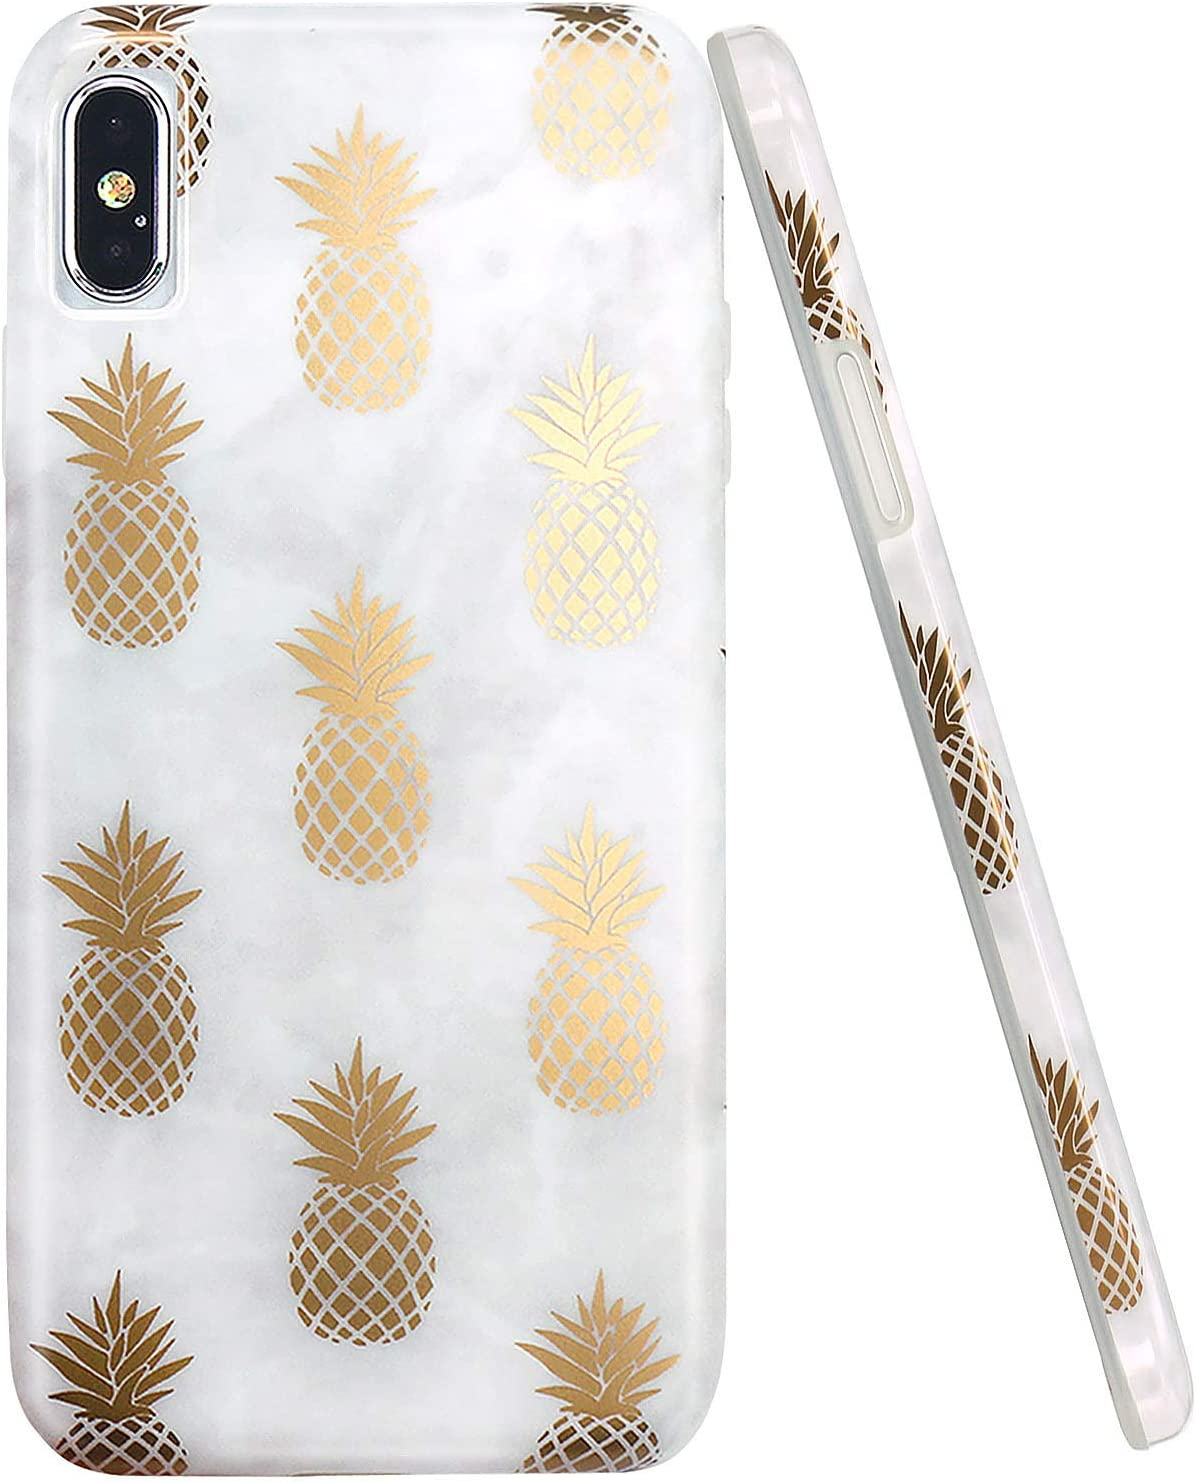 JAHOLAN Compatible iPhone Xs Max Case Shiny Rose Gold Pineapples Marble Design Clear Bumper TPU Soft Rubber Silicone Cover Phone Case for iPhone Xs Max 2018 Grey